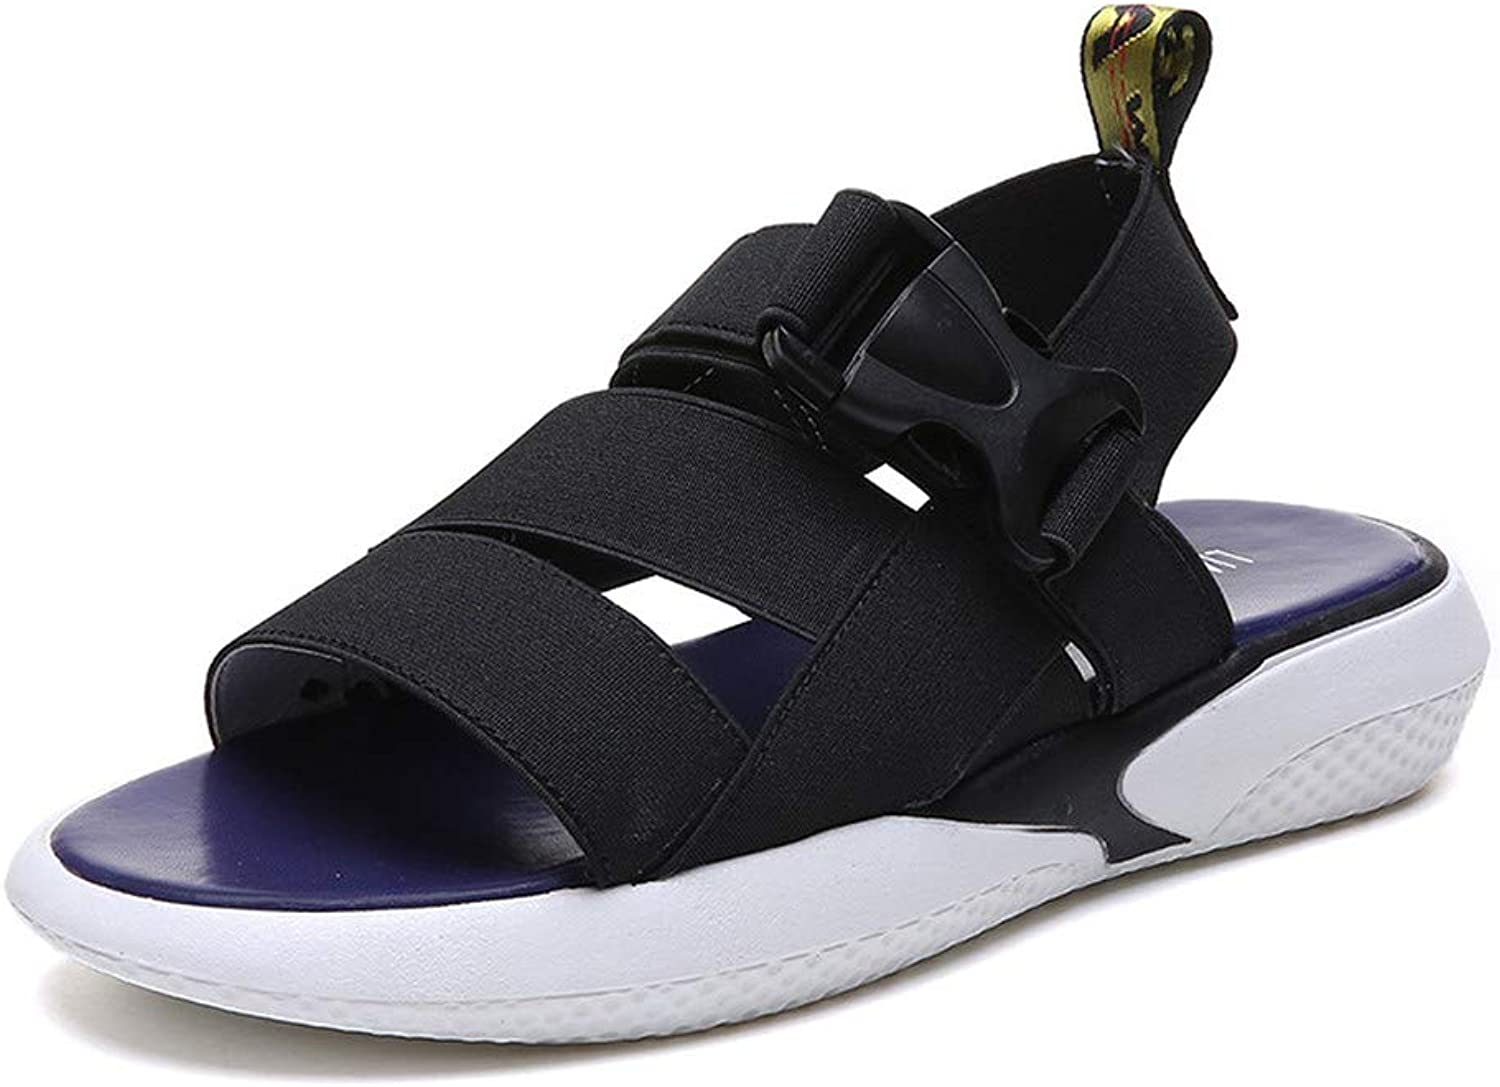 DBQWTY Women's Flat-Soled shoes Beach shoes Casual Sandals